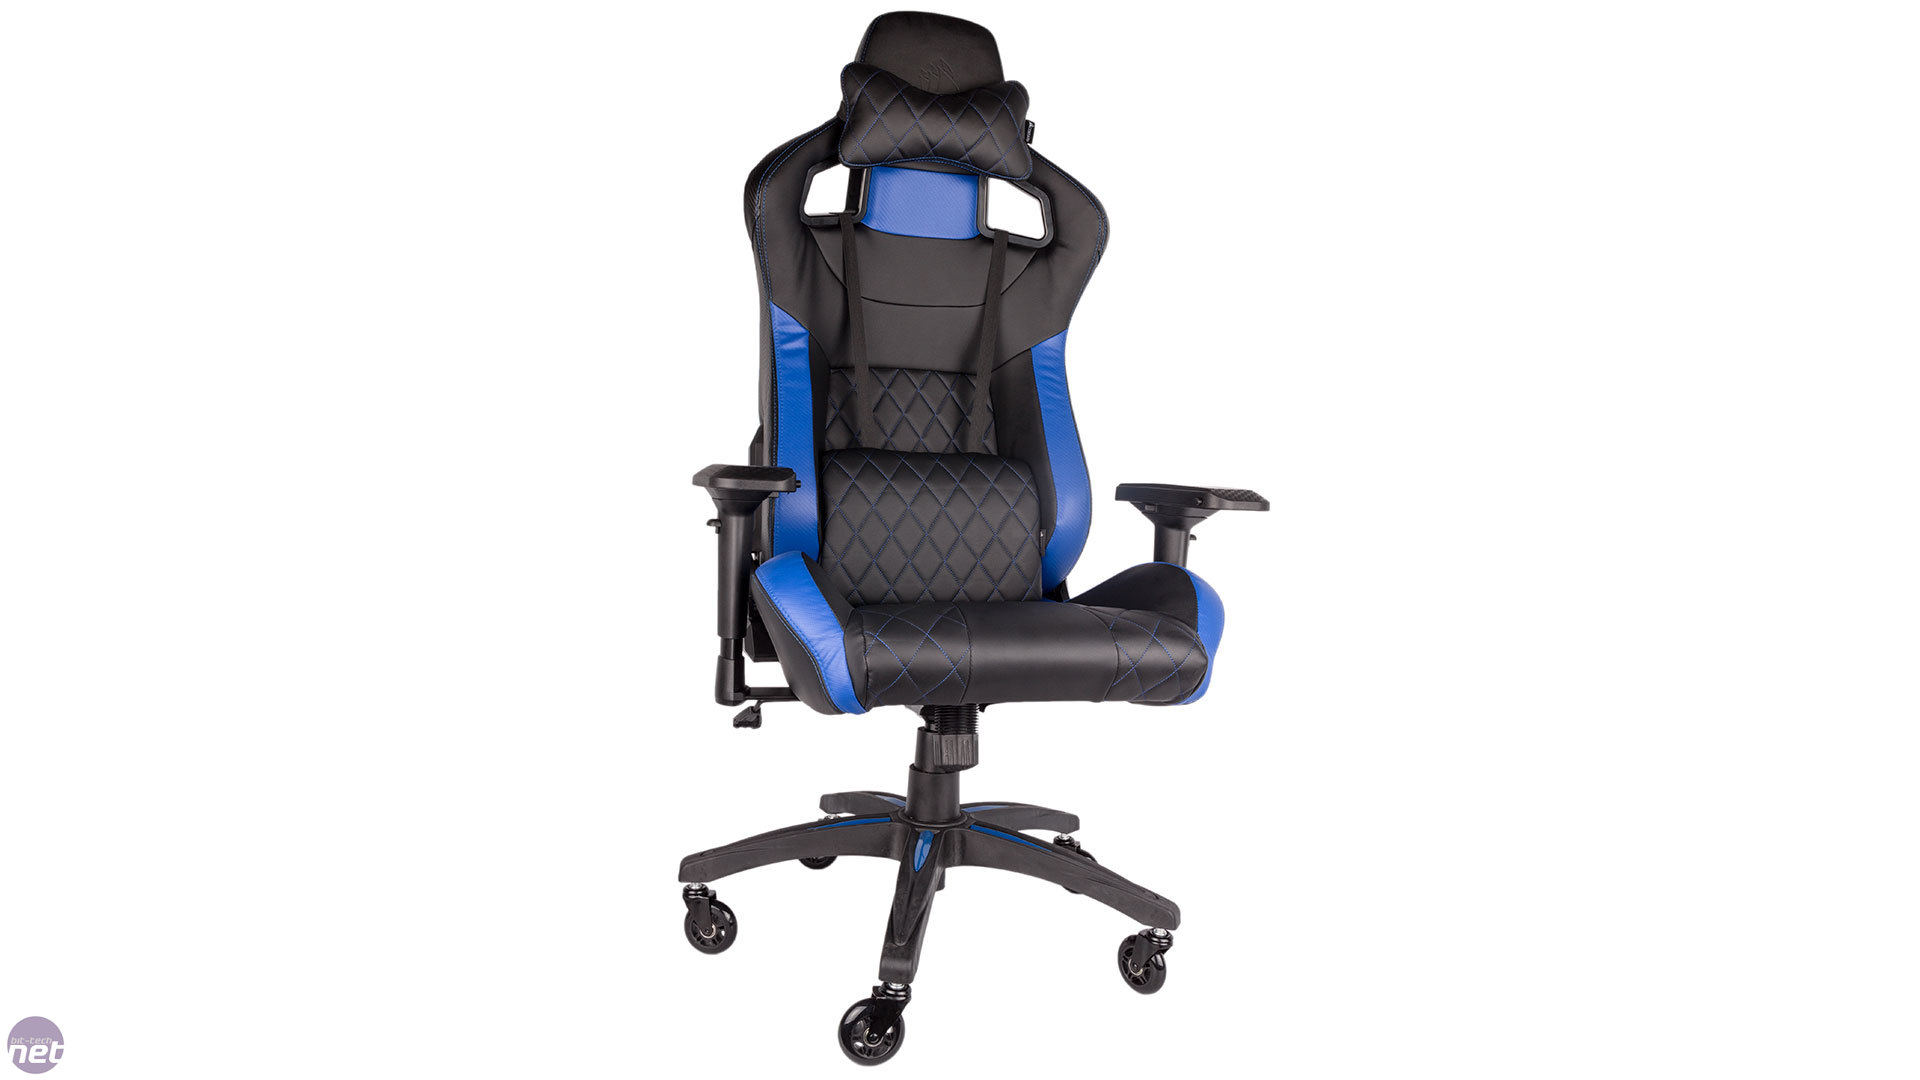 Corsair T1 Race Gaming Chair Vs Dxracer Gaming Chair